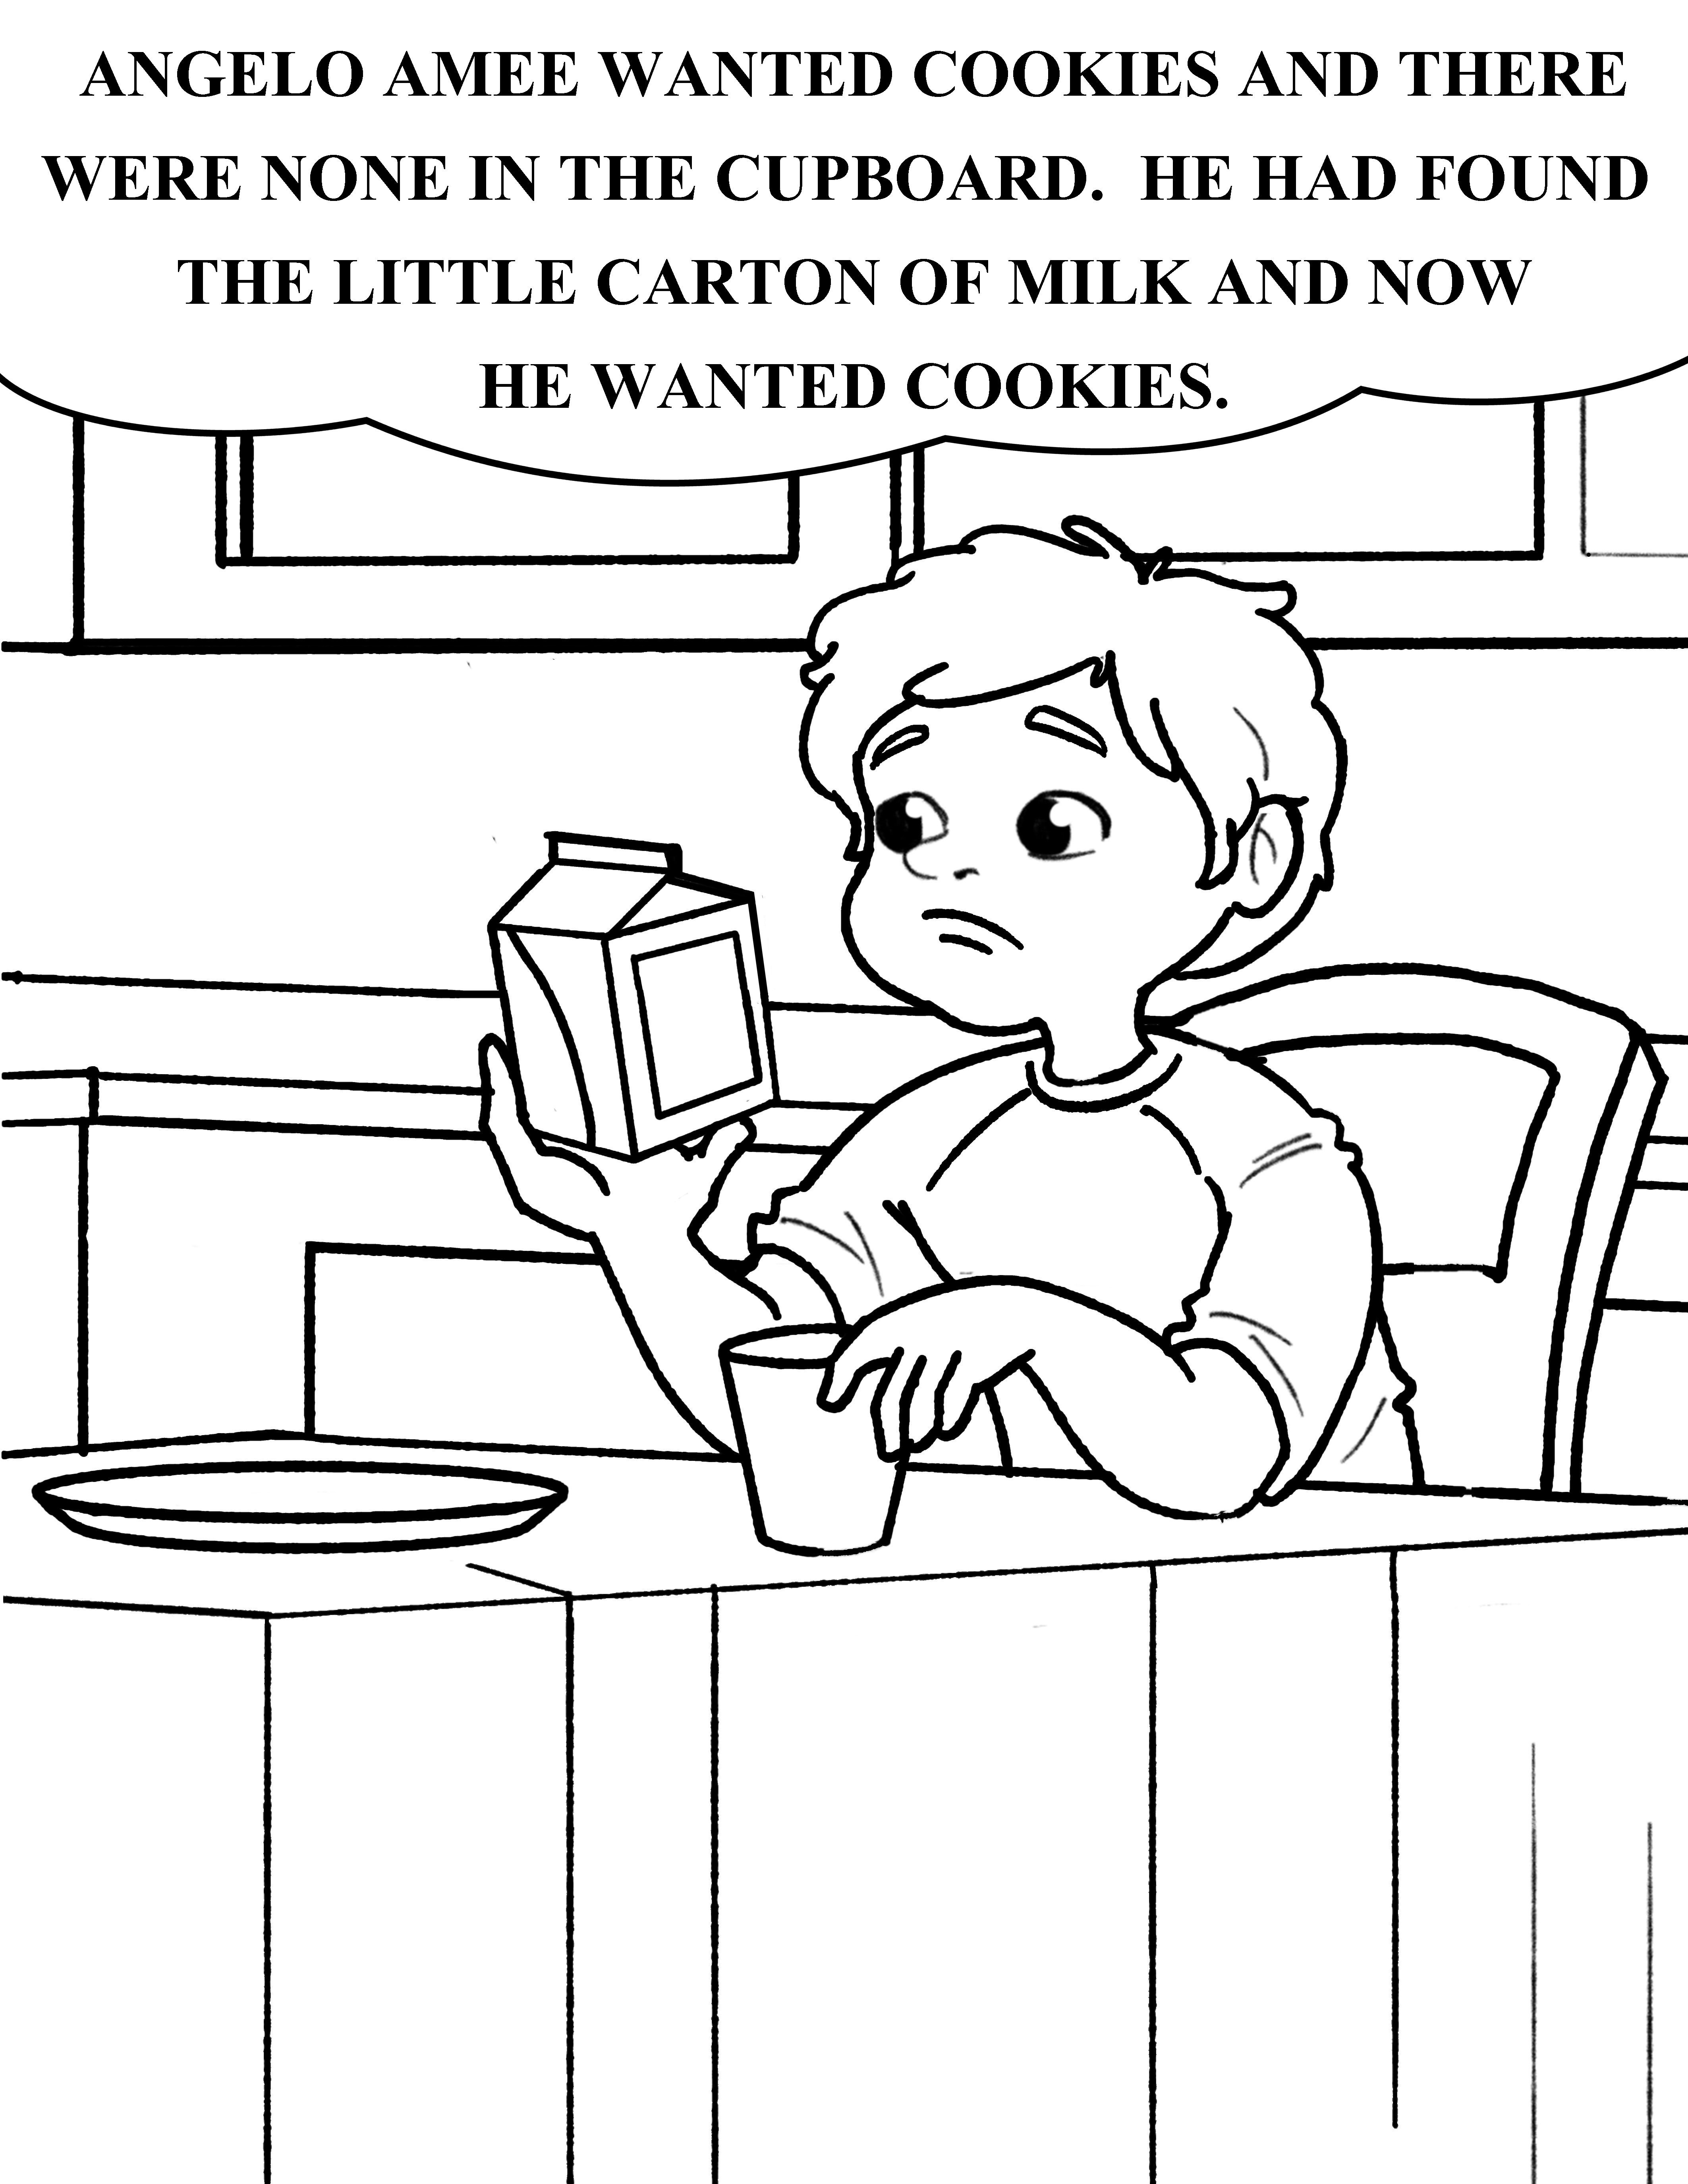 Coloring-pages-for-children-of-divorce